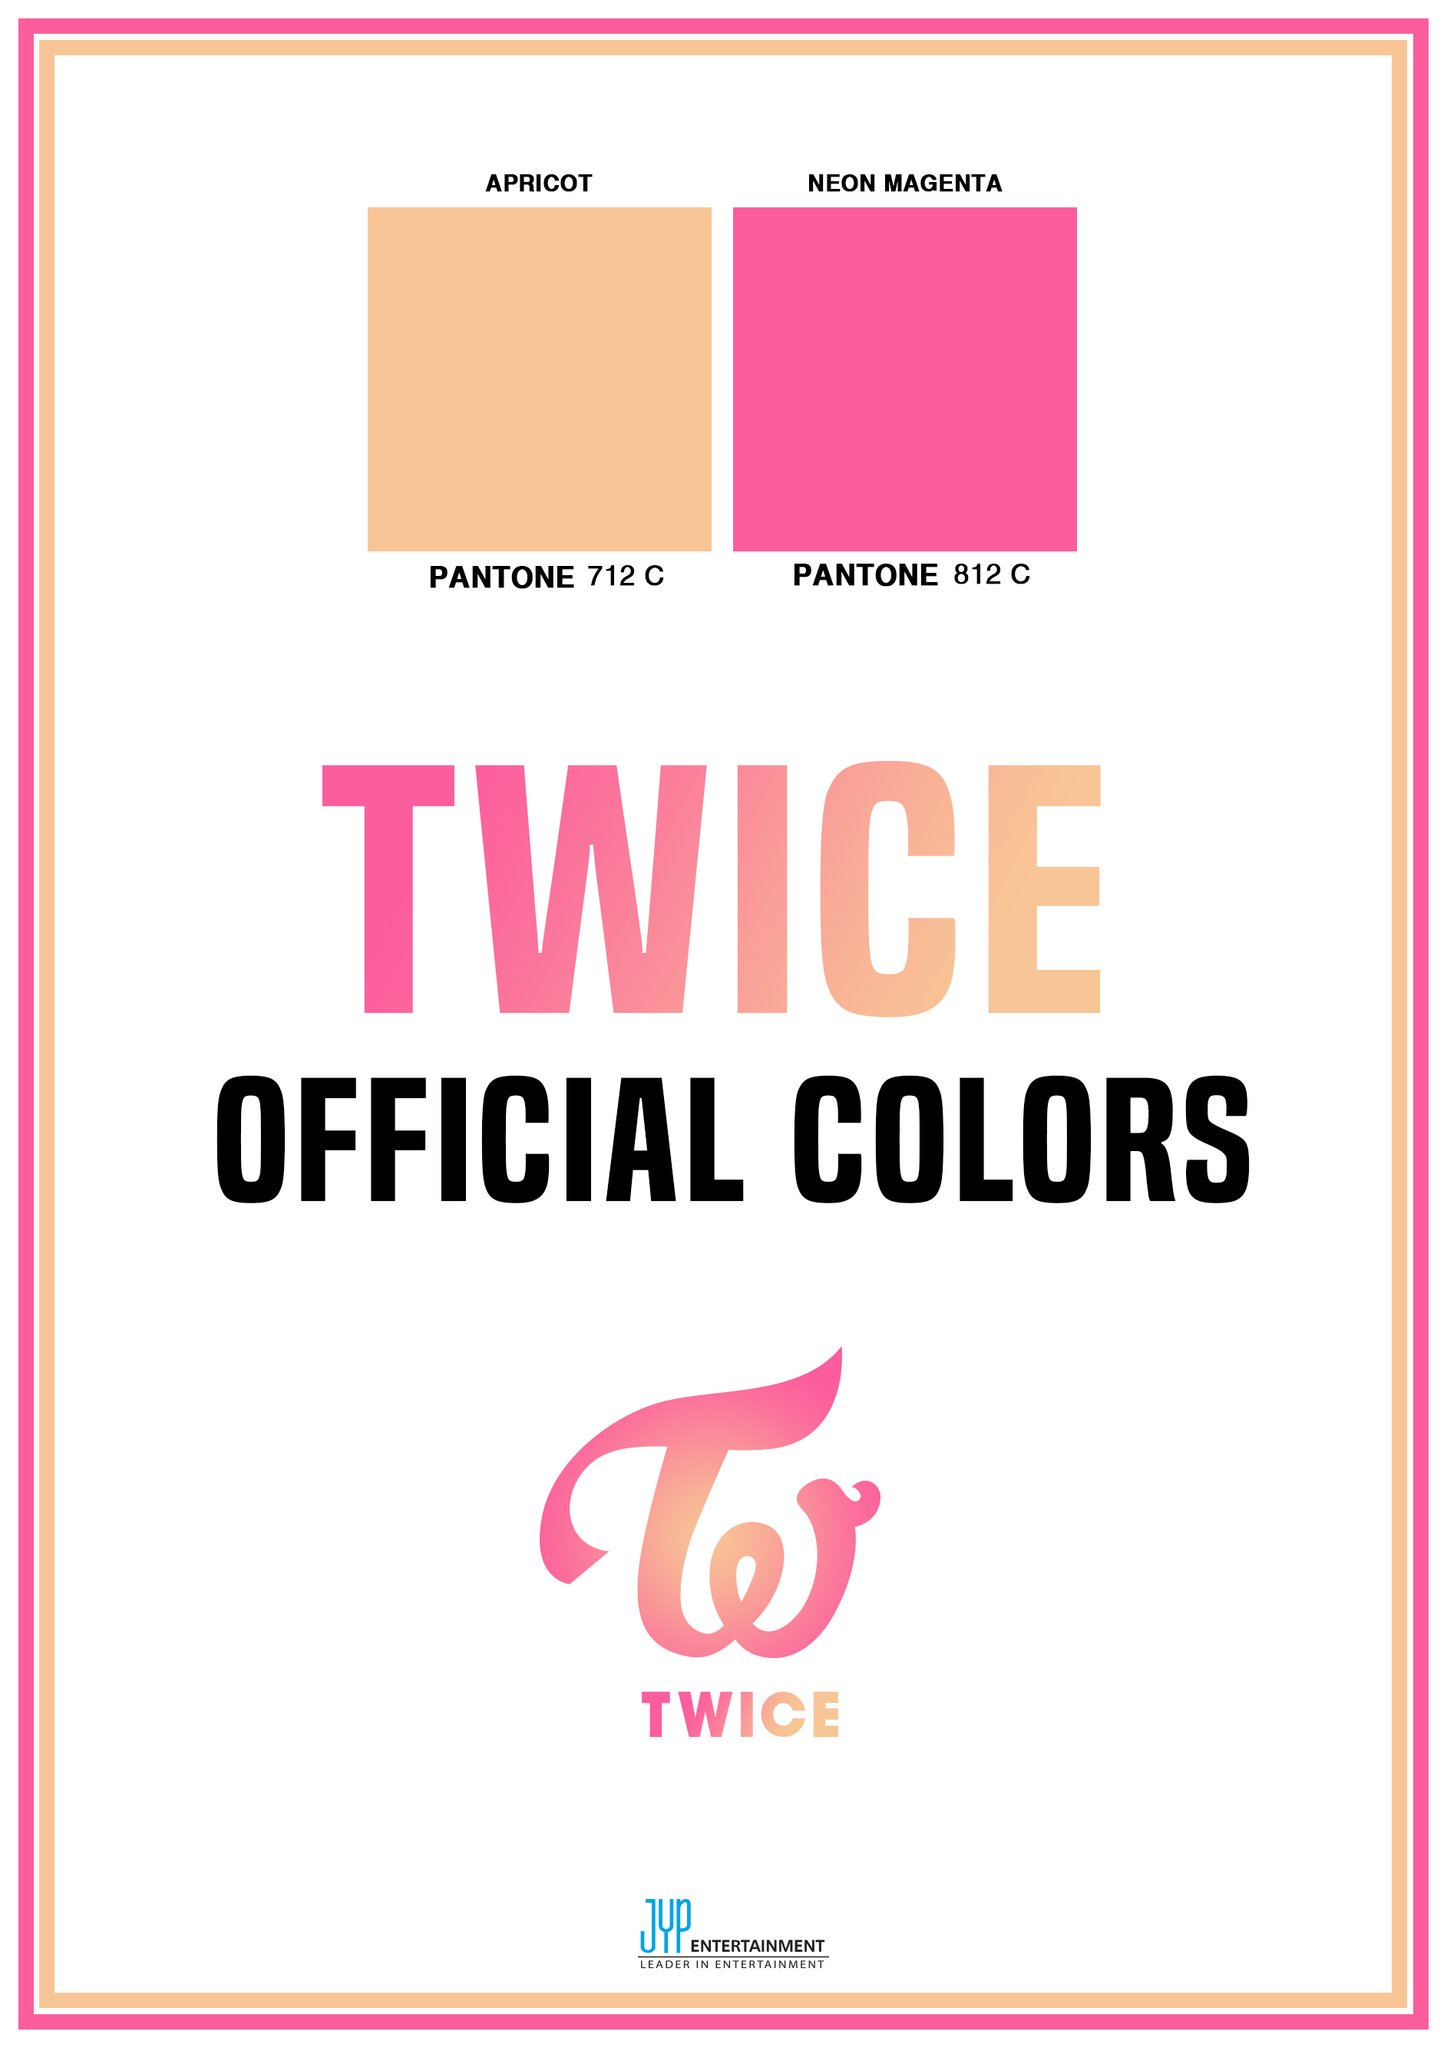 TWICE OFFICIAL COLORS